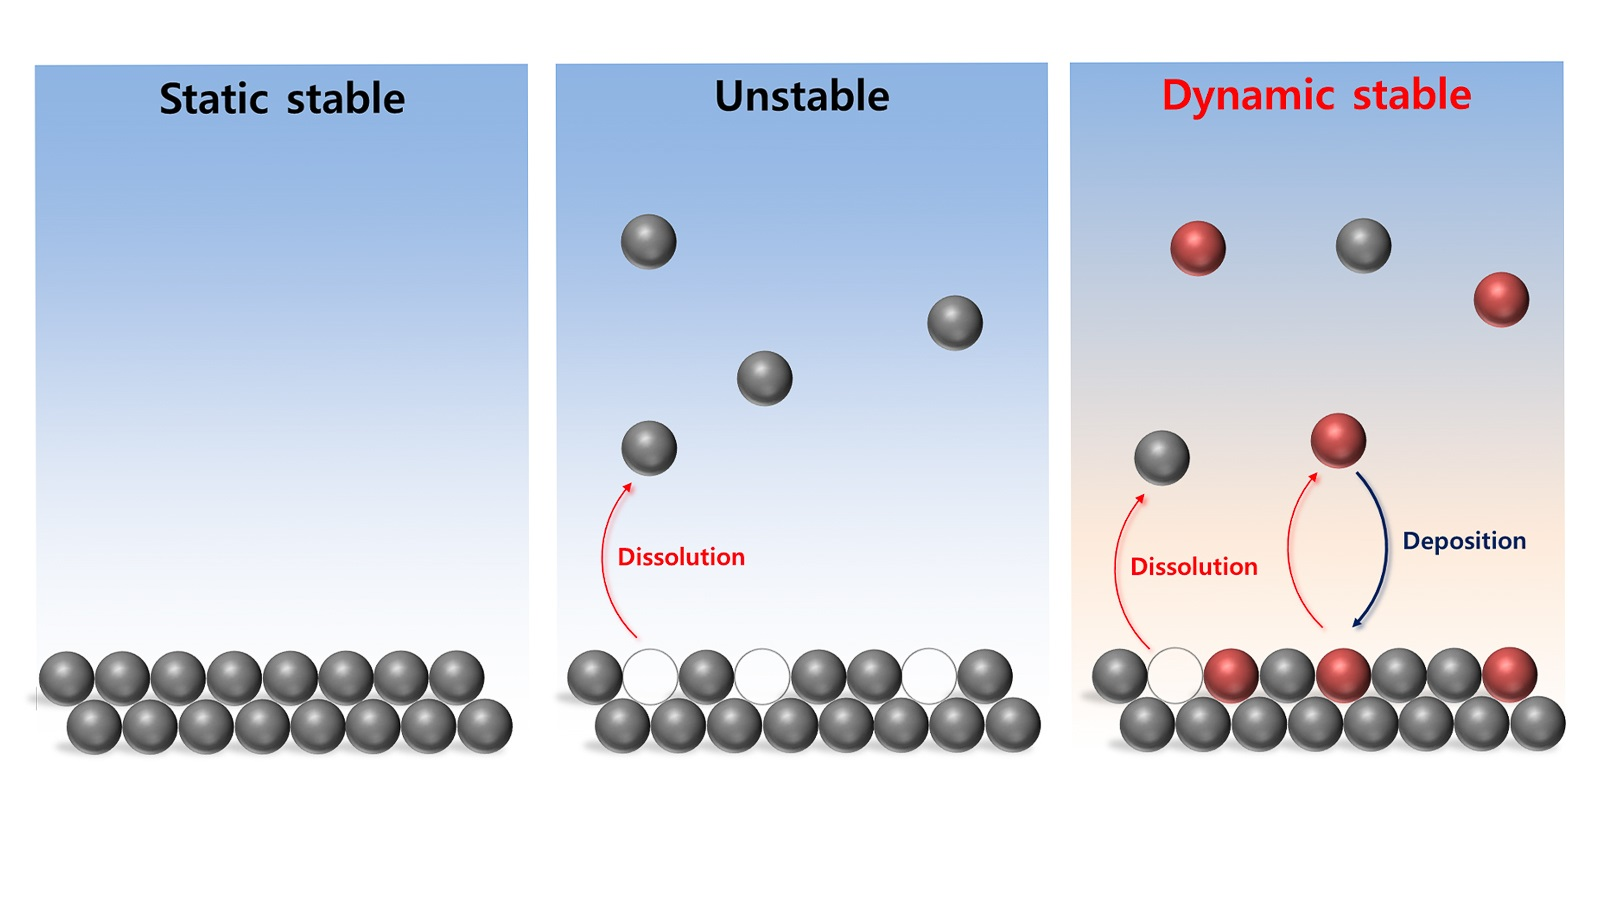 Schematic illustration of three types of stability —  static stability, instability and dynamic stability. The dynamically stable condition balances iron dissolution and deposition at the electrochemical interface. (Image by Dongyoung Jung, Argonne National Laboratory.)